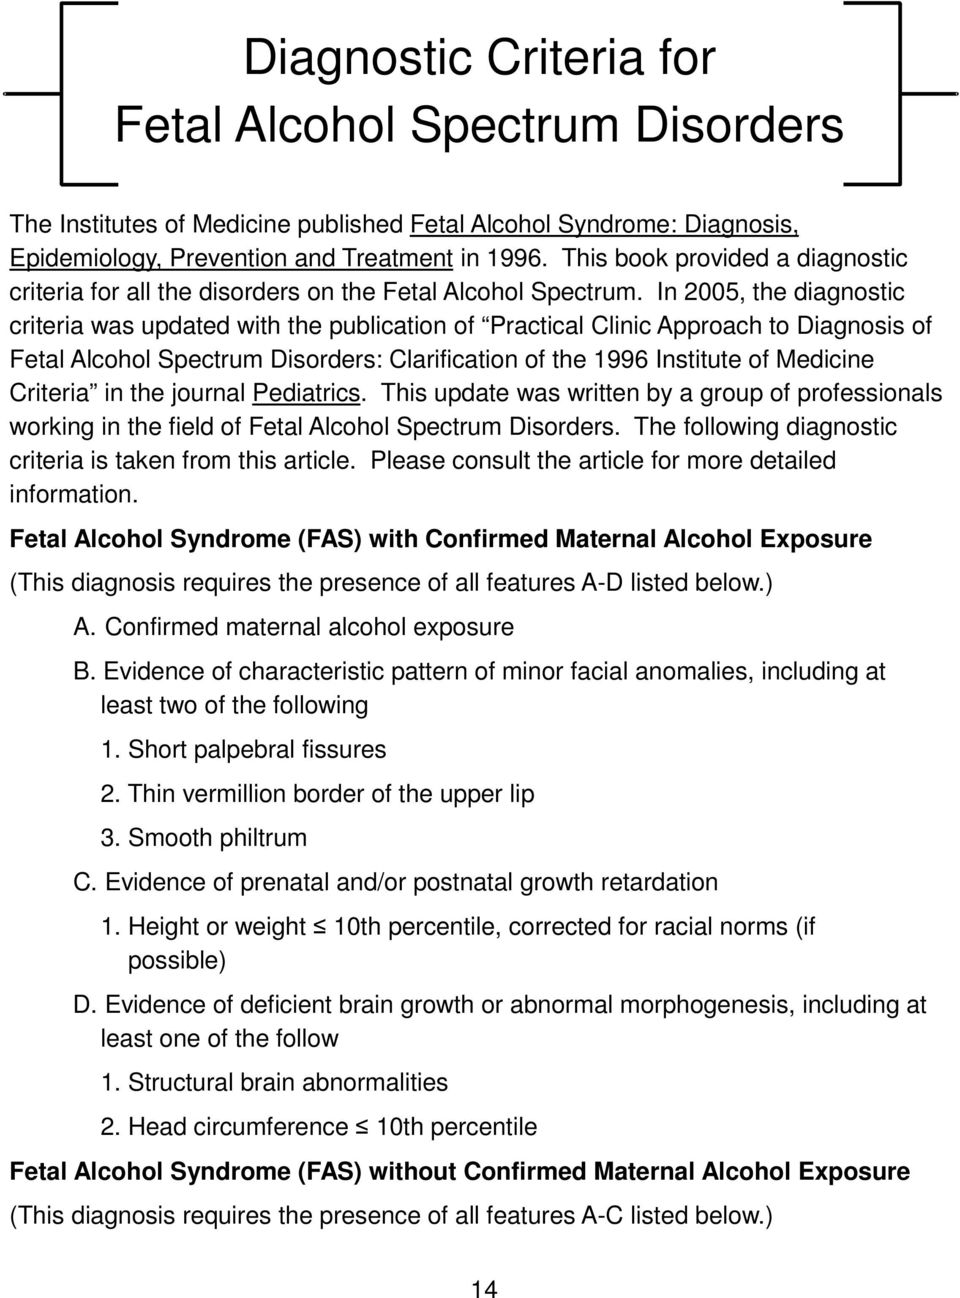 In 2005, the diagnostic criteria was updated with the publication of Practical Clinic Approach to Diagnosis of Fetal Alcohol Spectrum Disorders: Clarification of the 1996 Institute of Medicine